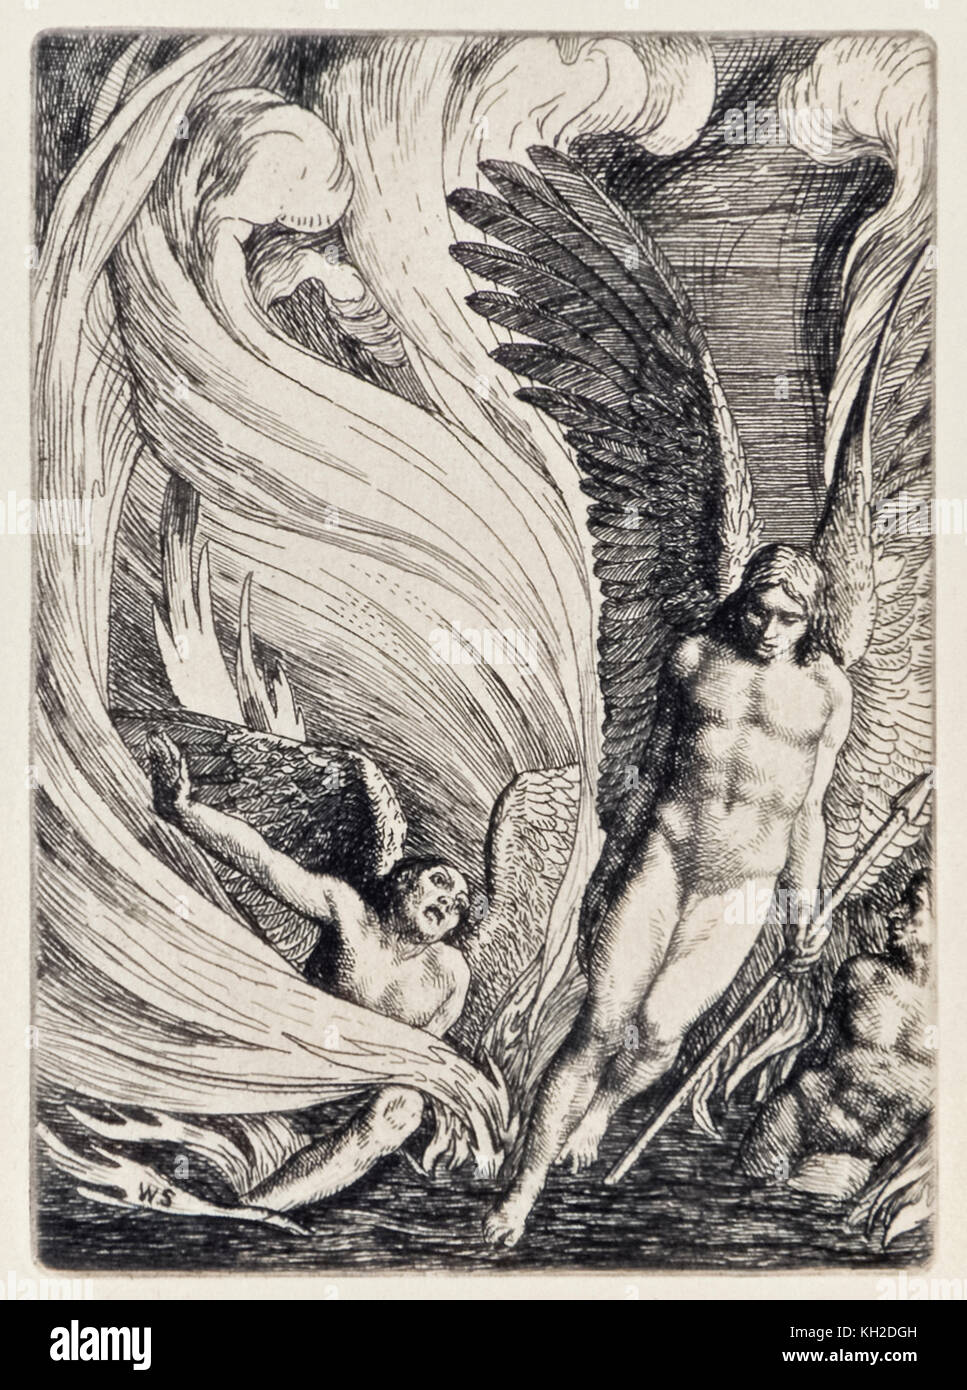 """Satan Rising from the Burning Lake"" from 'Paradise Lost' by John Milton (1608-1674) a series of 12 illustrations - Stock Image"